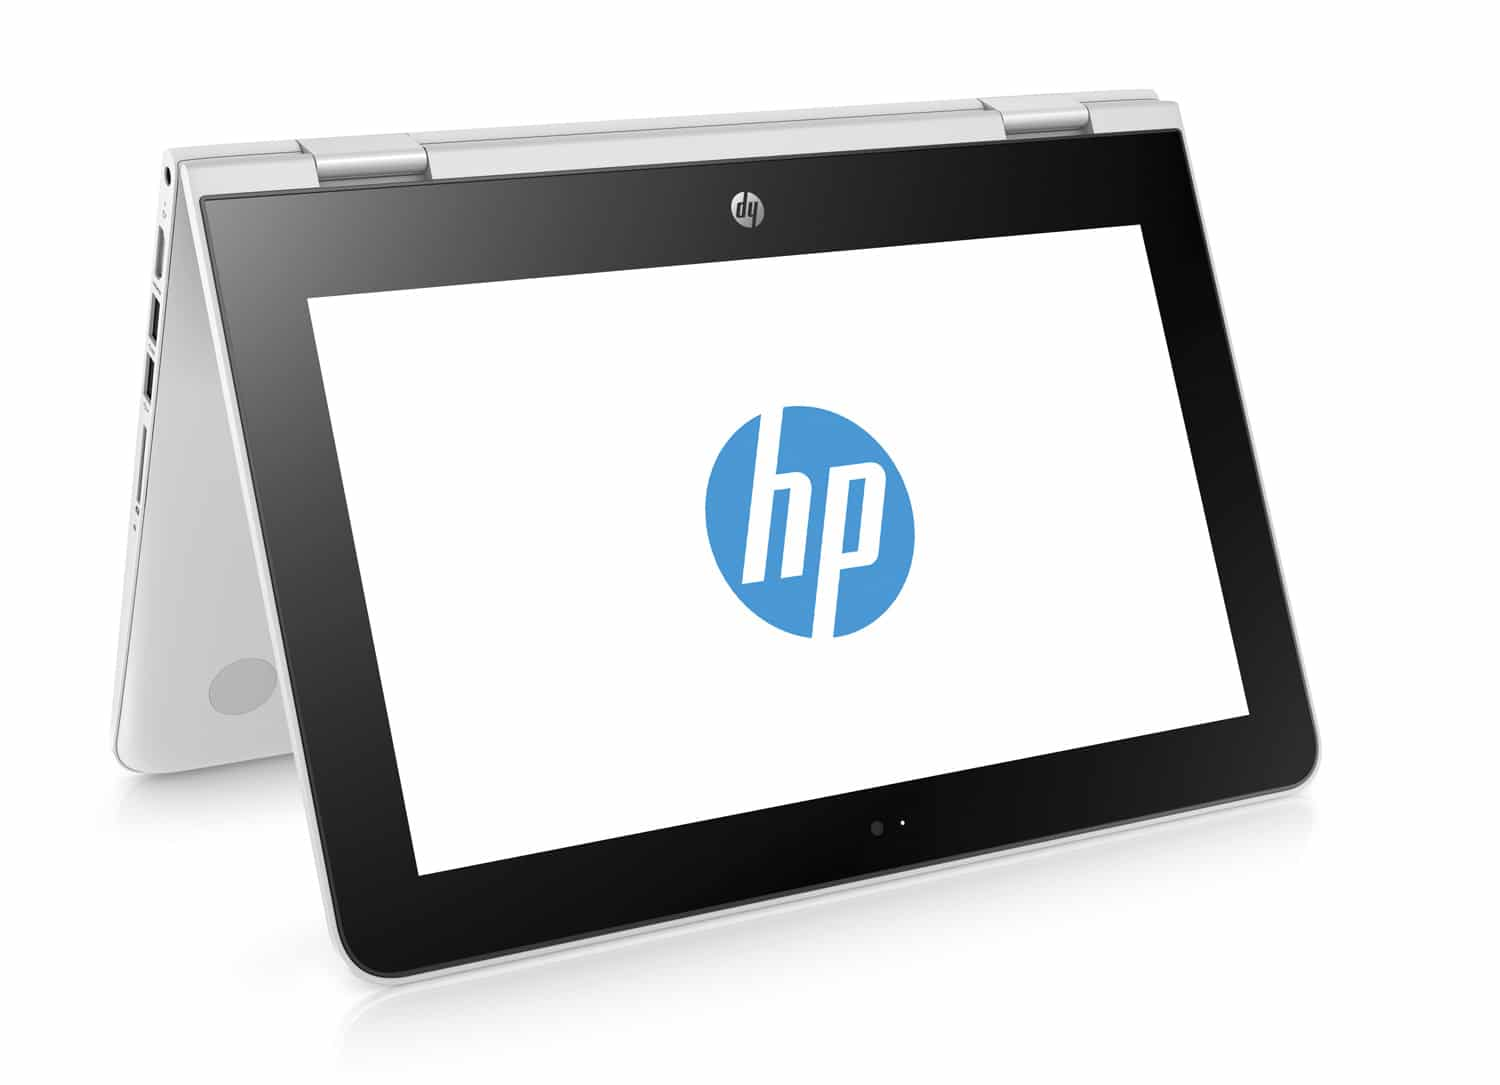 "HP x360 11-ab104nf à 419€, Ultrabook 11"" IPS tactile Tablette Quad pas cher"